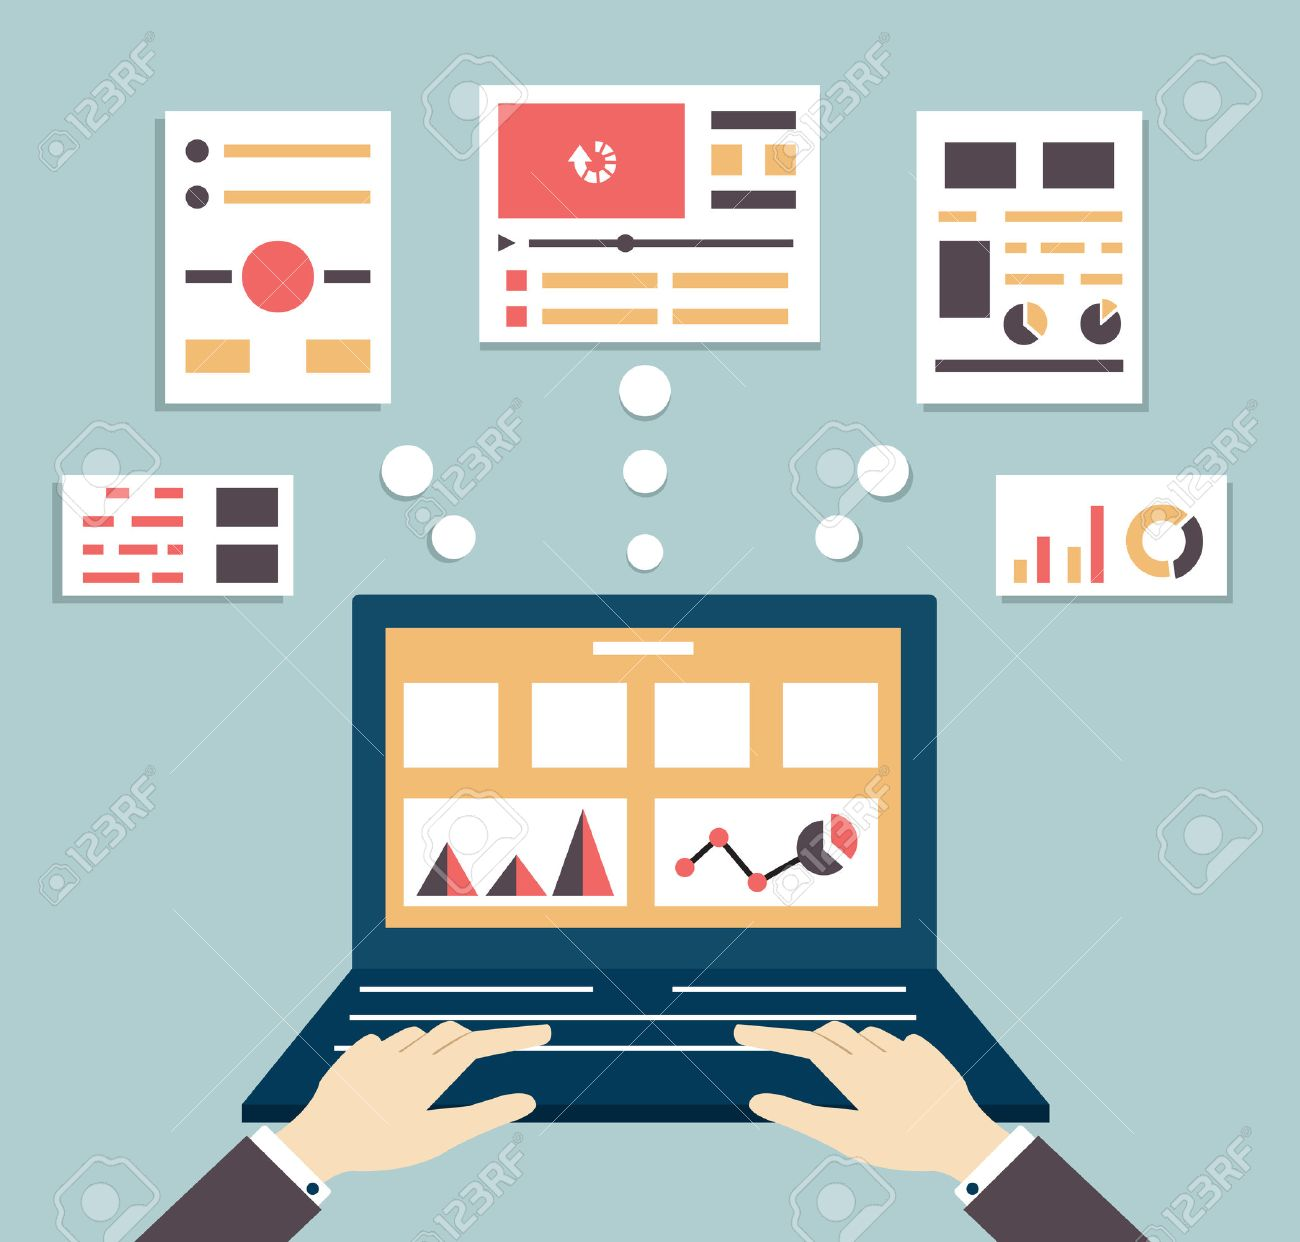 Flat vector illustration of web and application optimization, programming, design and analytics - vector illustration Stock Vector - 24751182